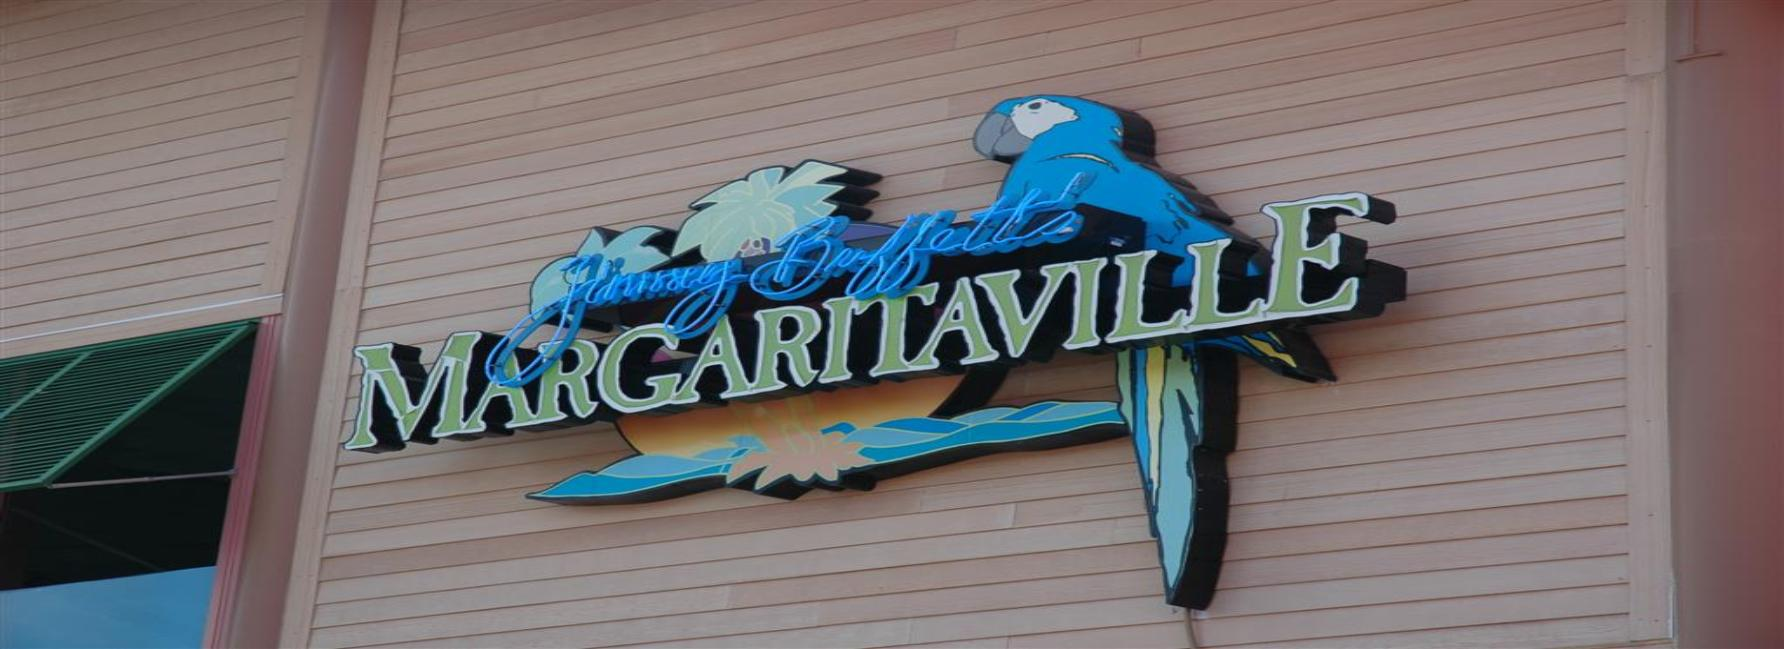 Jimmy Buffett's Margaritaville At Broadway At The Beach - Photo courtesy of Bob & Bernie Grier.